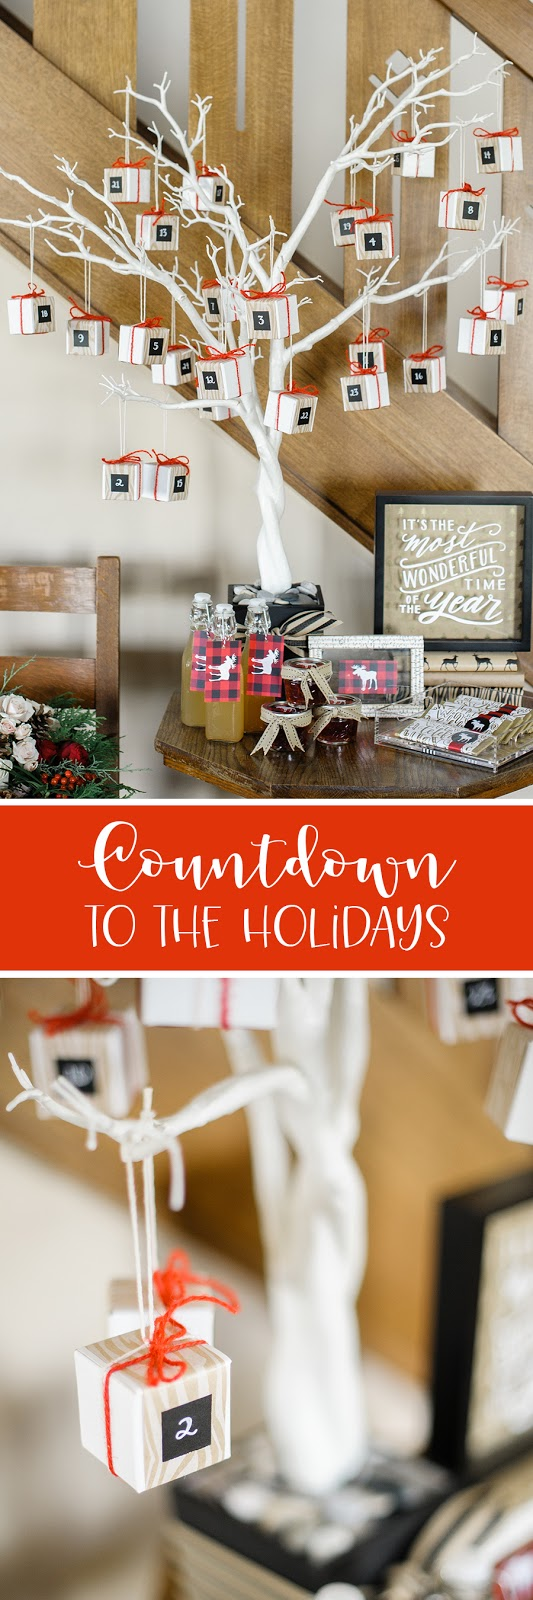 count down to the holidays inspiration from Creative Bag